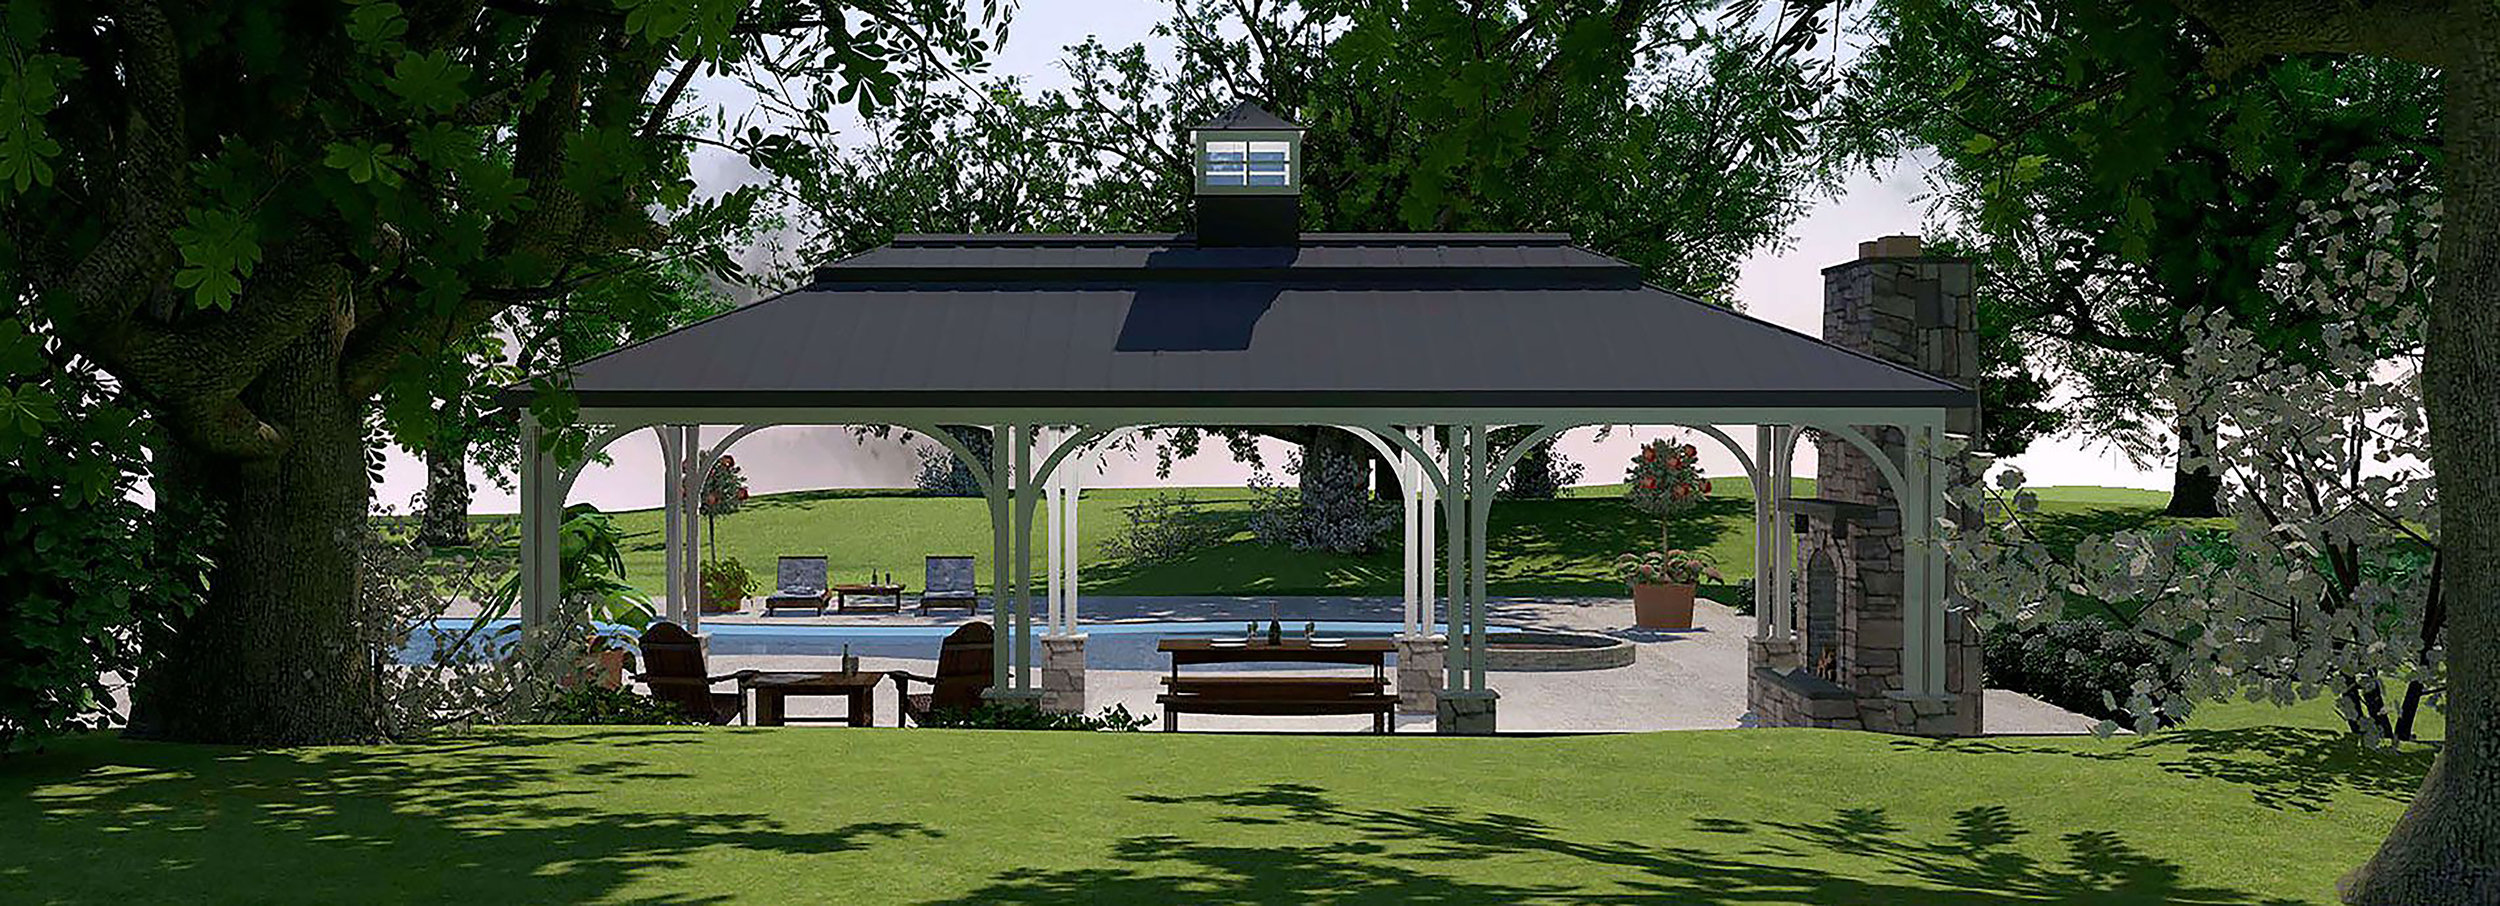 Oasis Outdoors Pavilion Homepage Slider Compressor Jpg